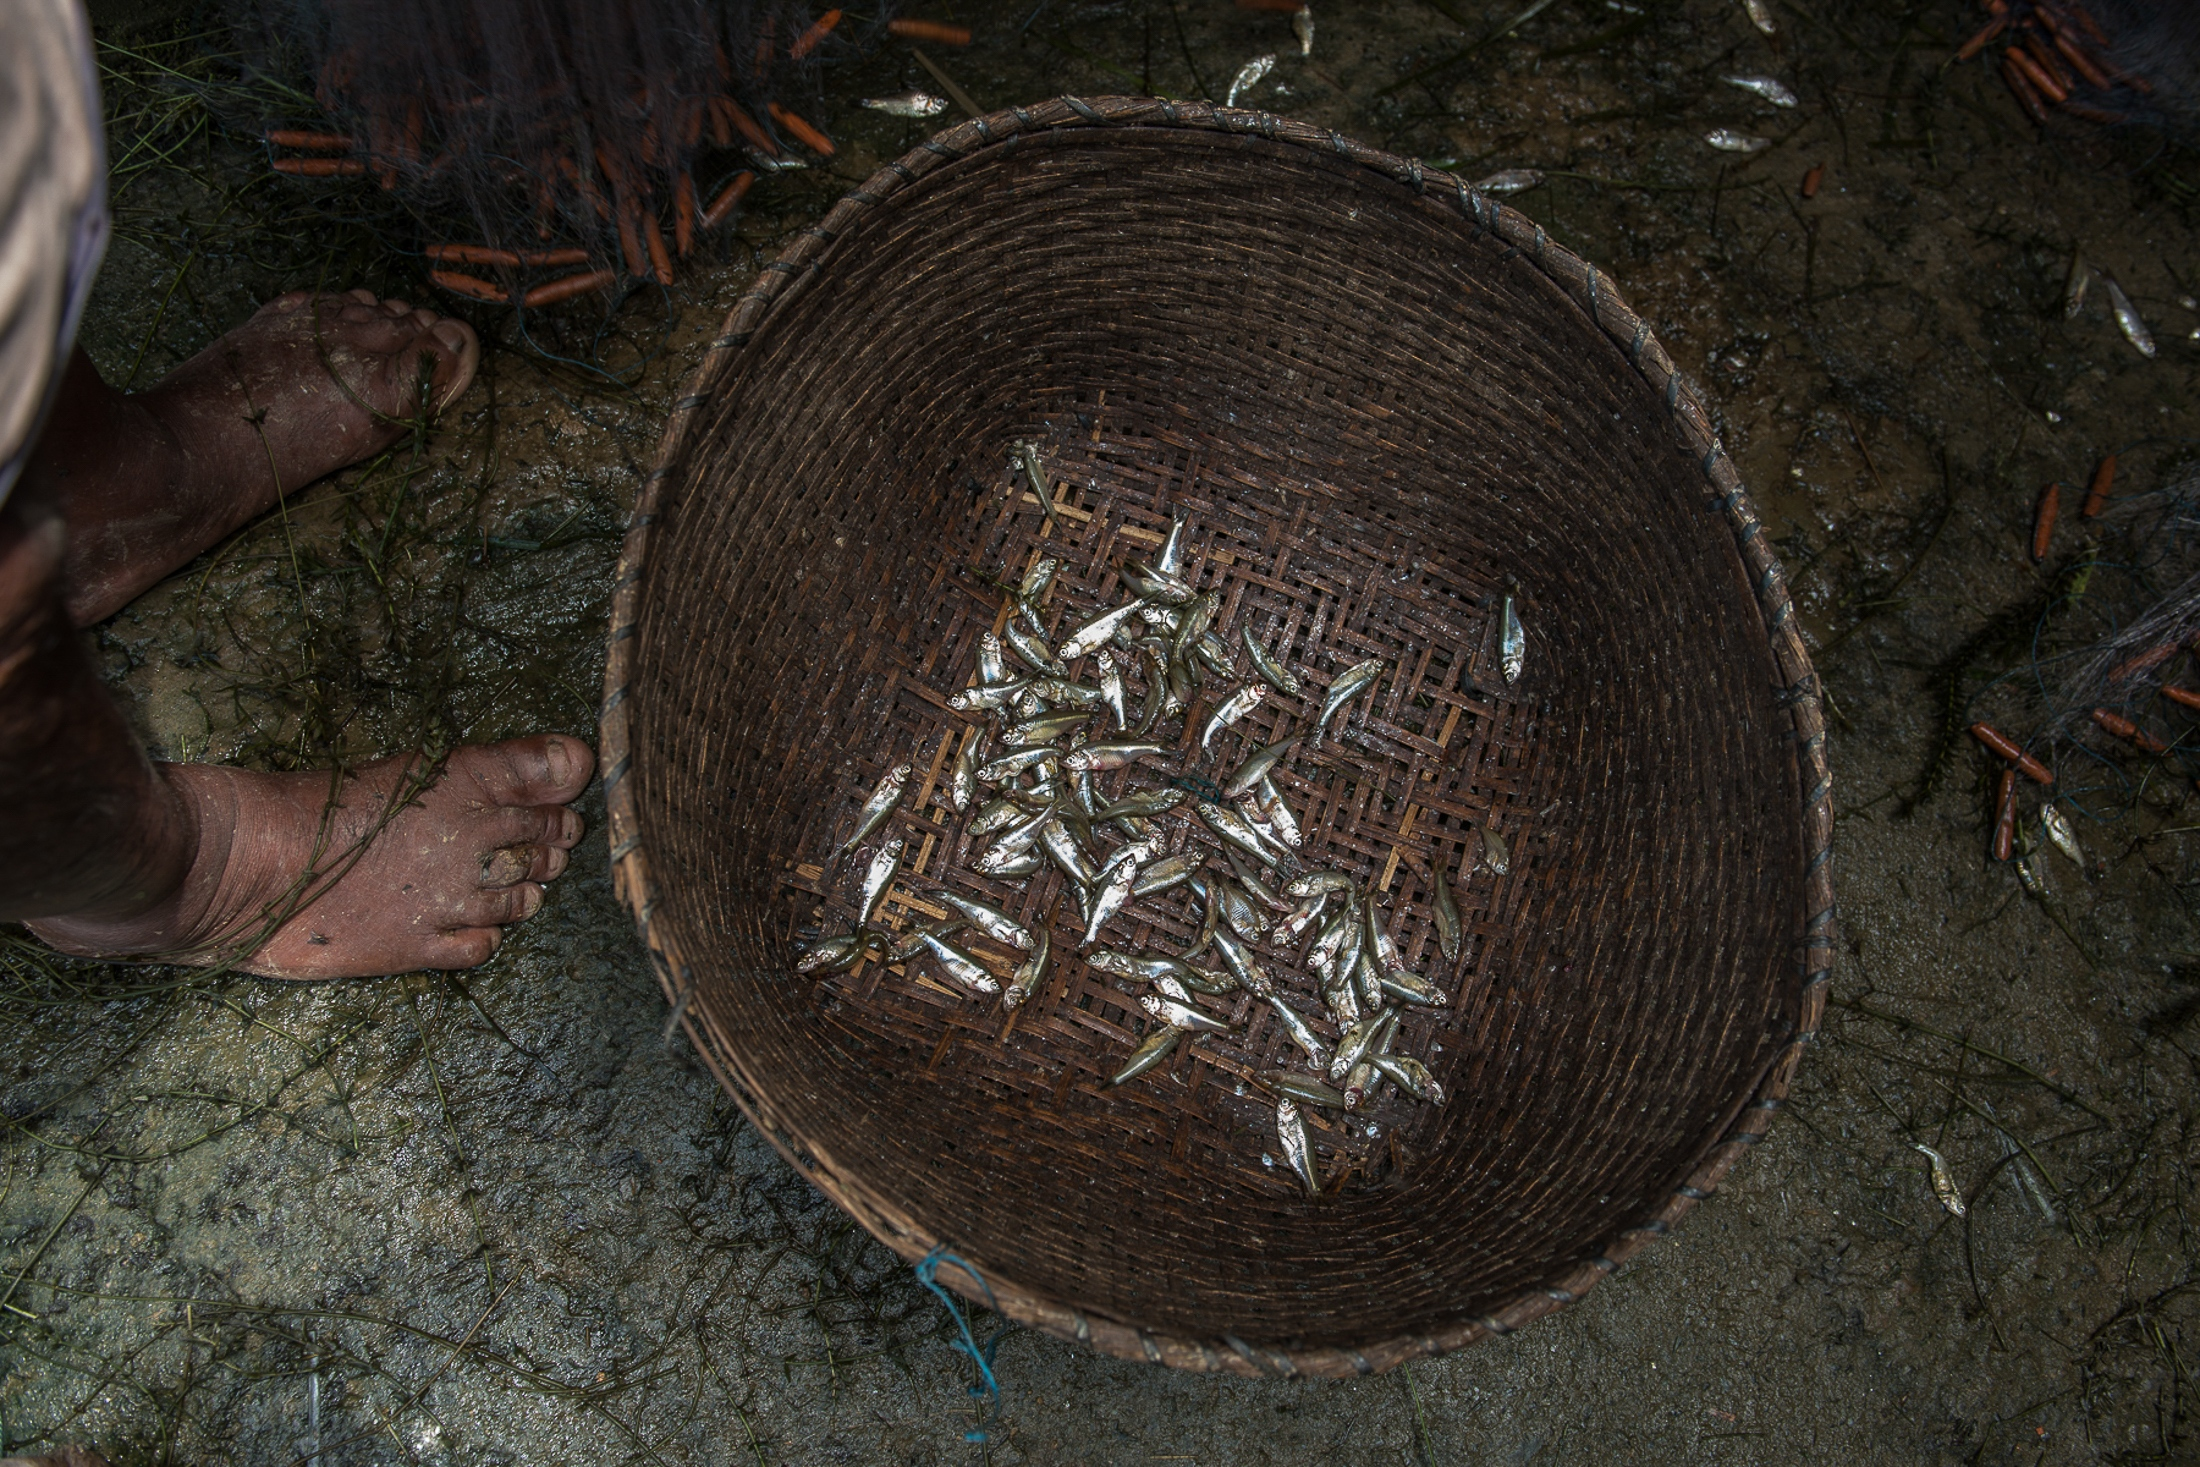 Mukha nga (non-native fish) that were fished from Loktak lake sit in a basket at the Laishram family home in Thanga, Manipur. After the construction of Itahi Dam when the native fish populations in the Loktak Lake began dwindling, the state fisheries department introduced numerous non-native fish species to the lake.